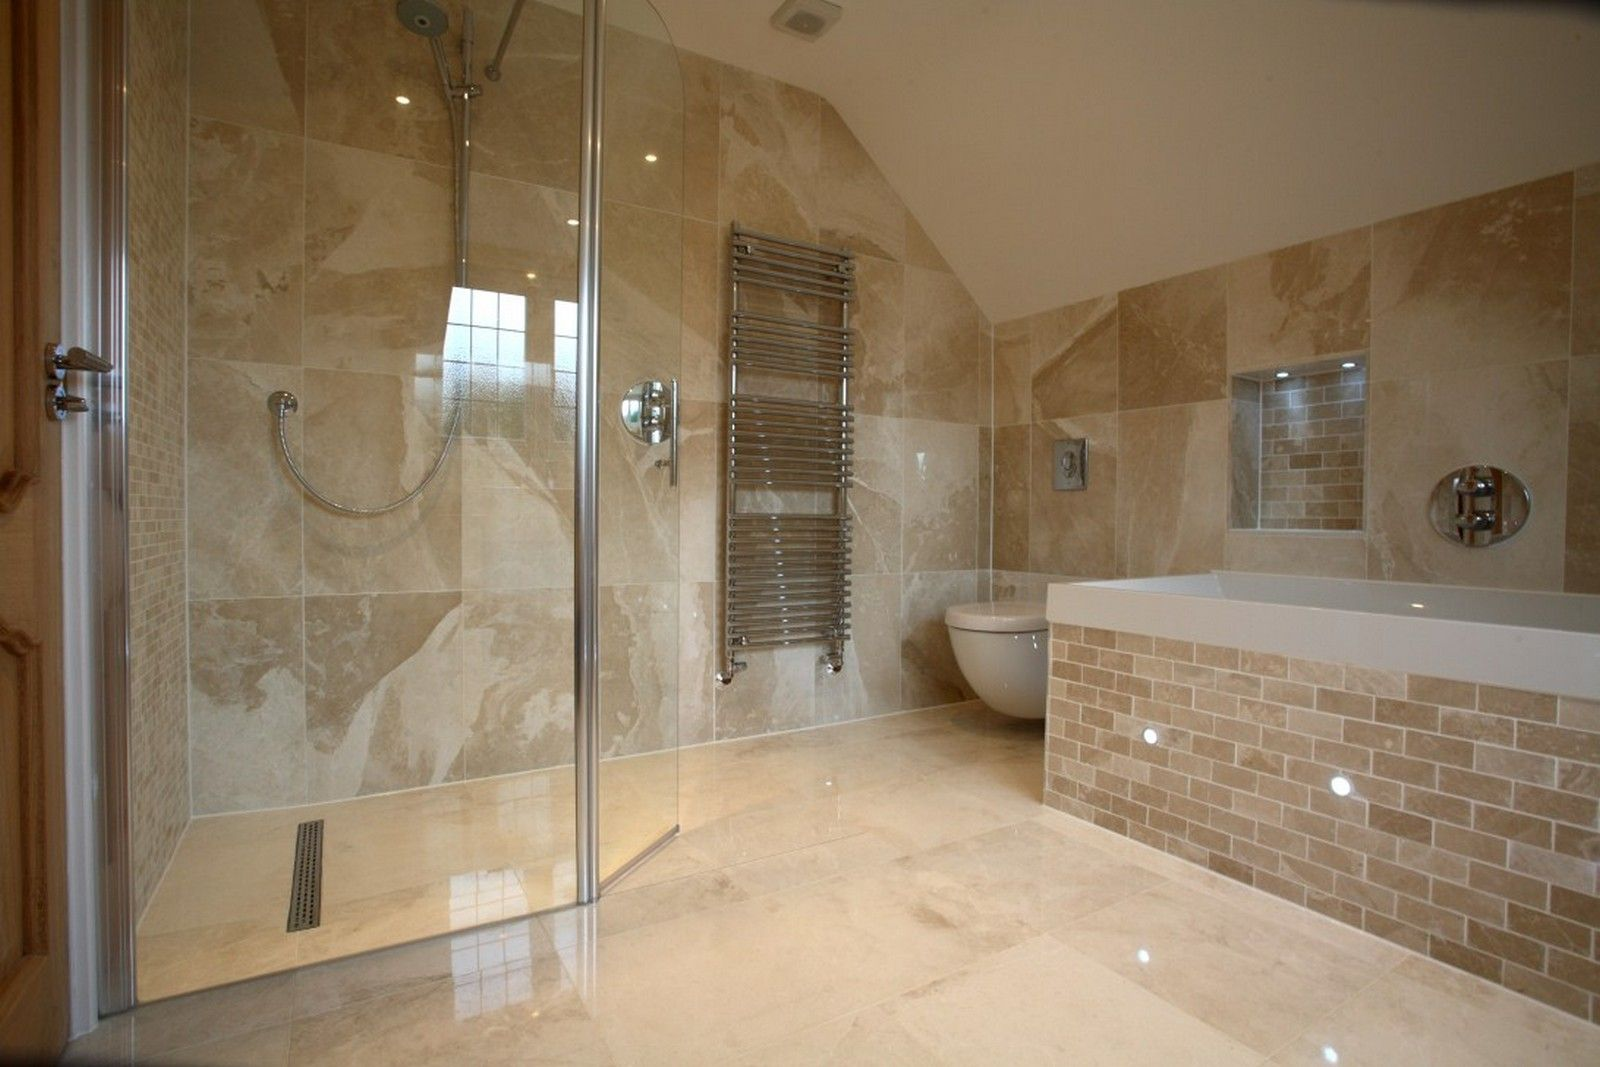 Bathroom Fitters Perth  Ideas  Pinterest  Band Bathroom And Perth Adorable Bathroom Designers And Fitters Inspiration Design